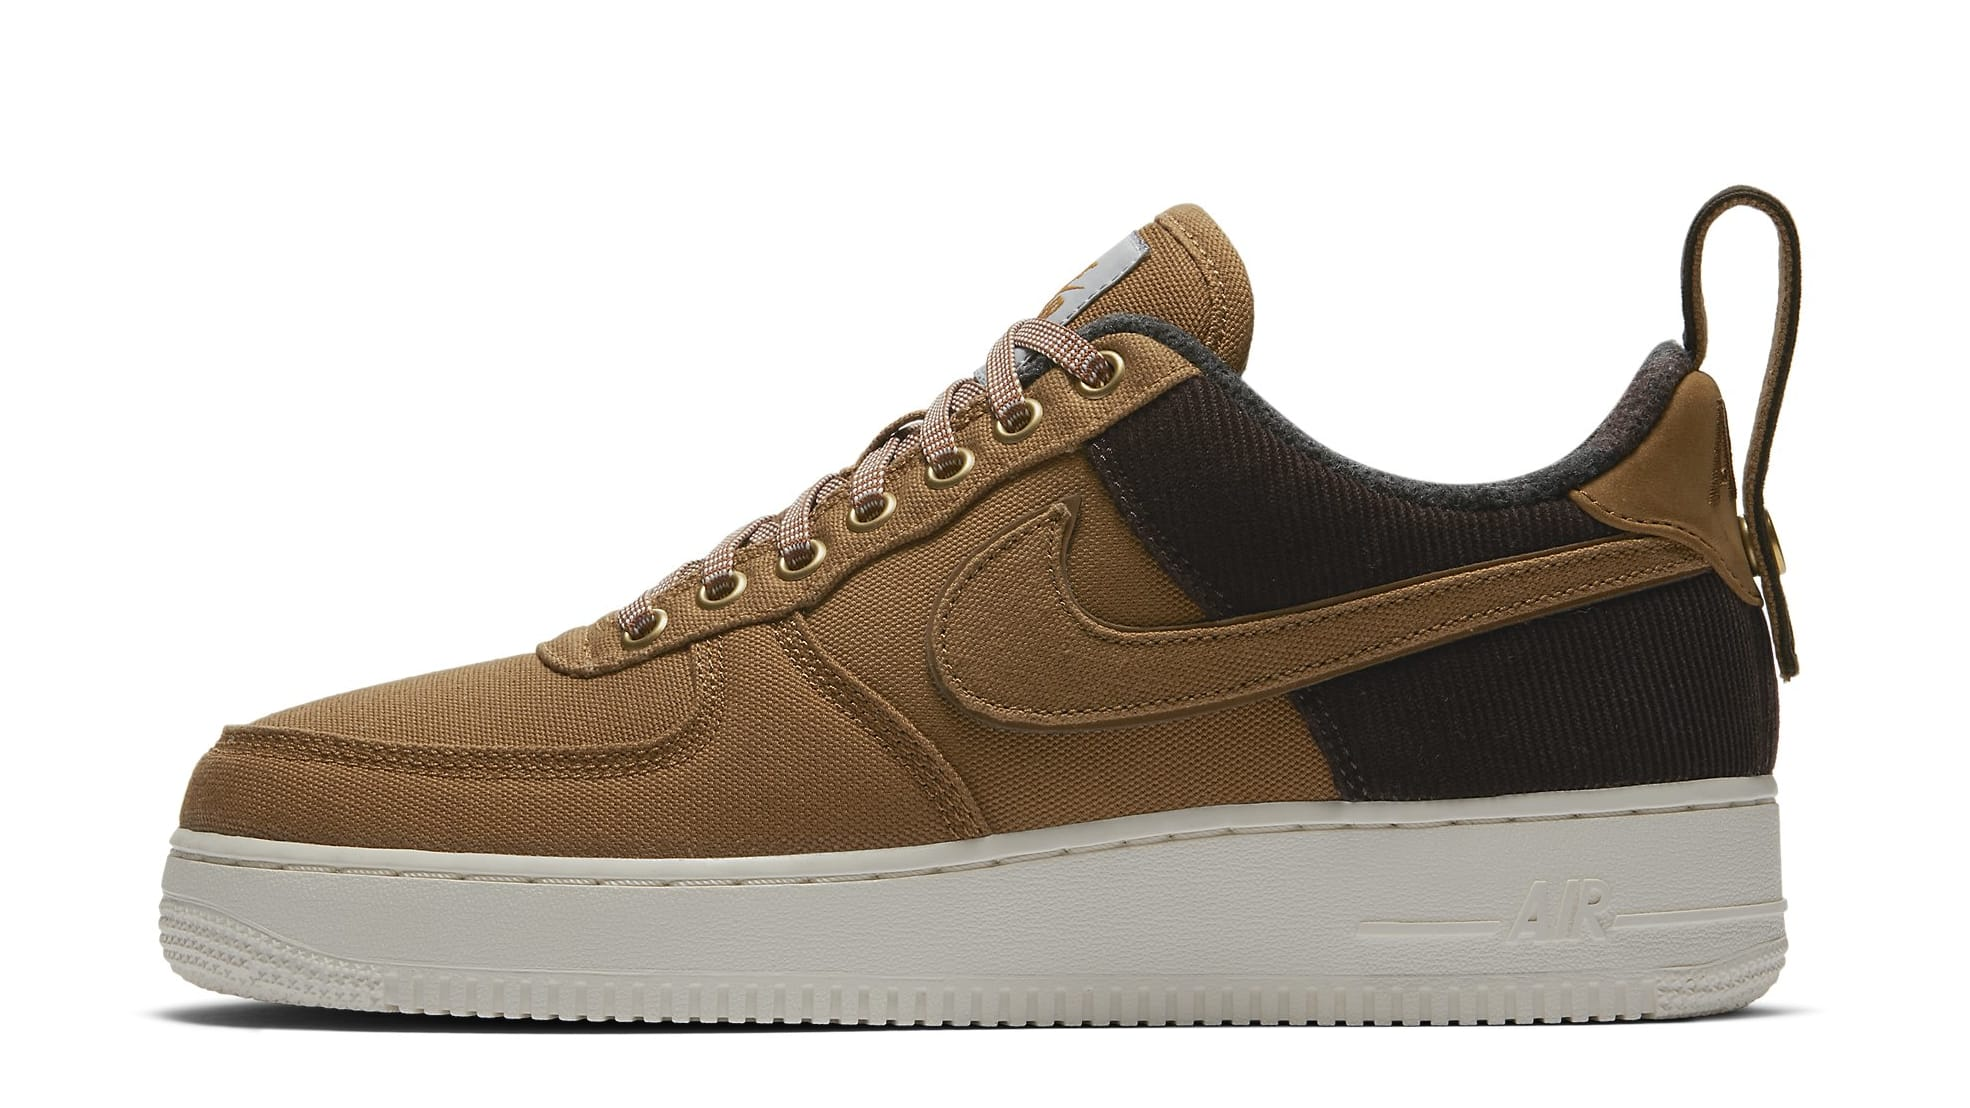 carhartt-wip-nike-air-force-1-low-av4113-200-lateral